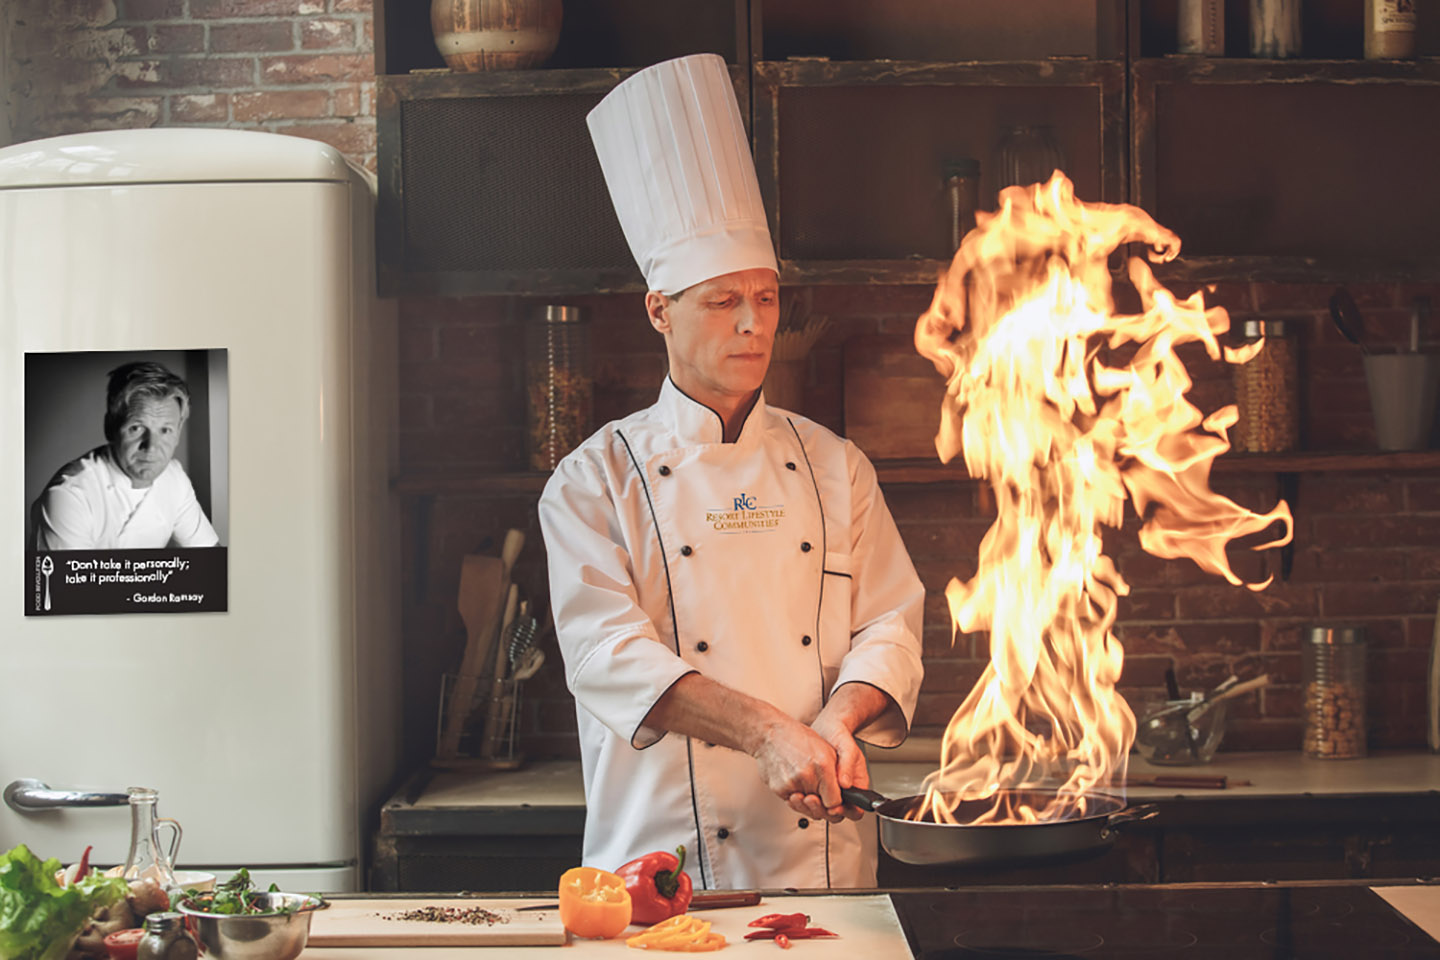 Culinary chef cooking a main dish